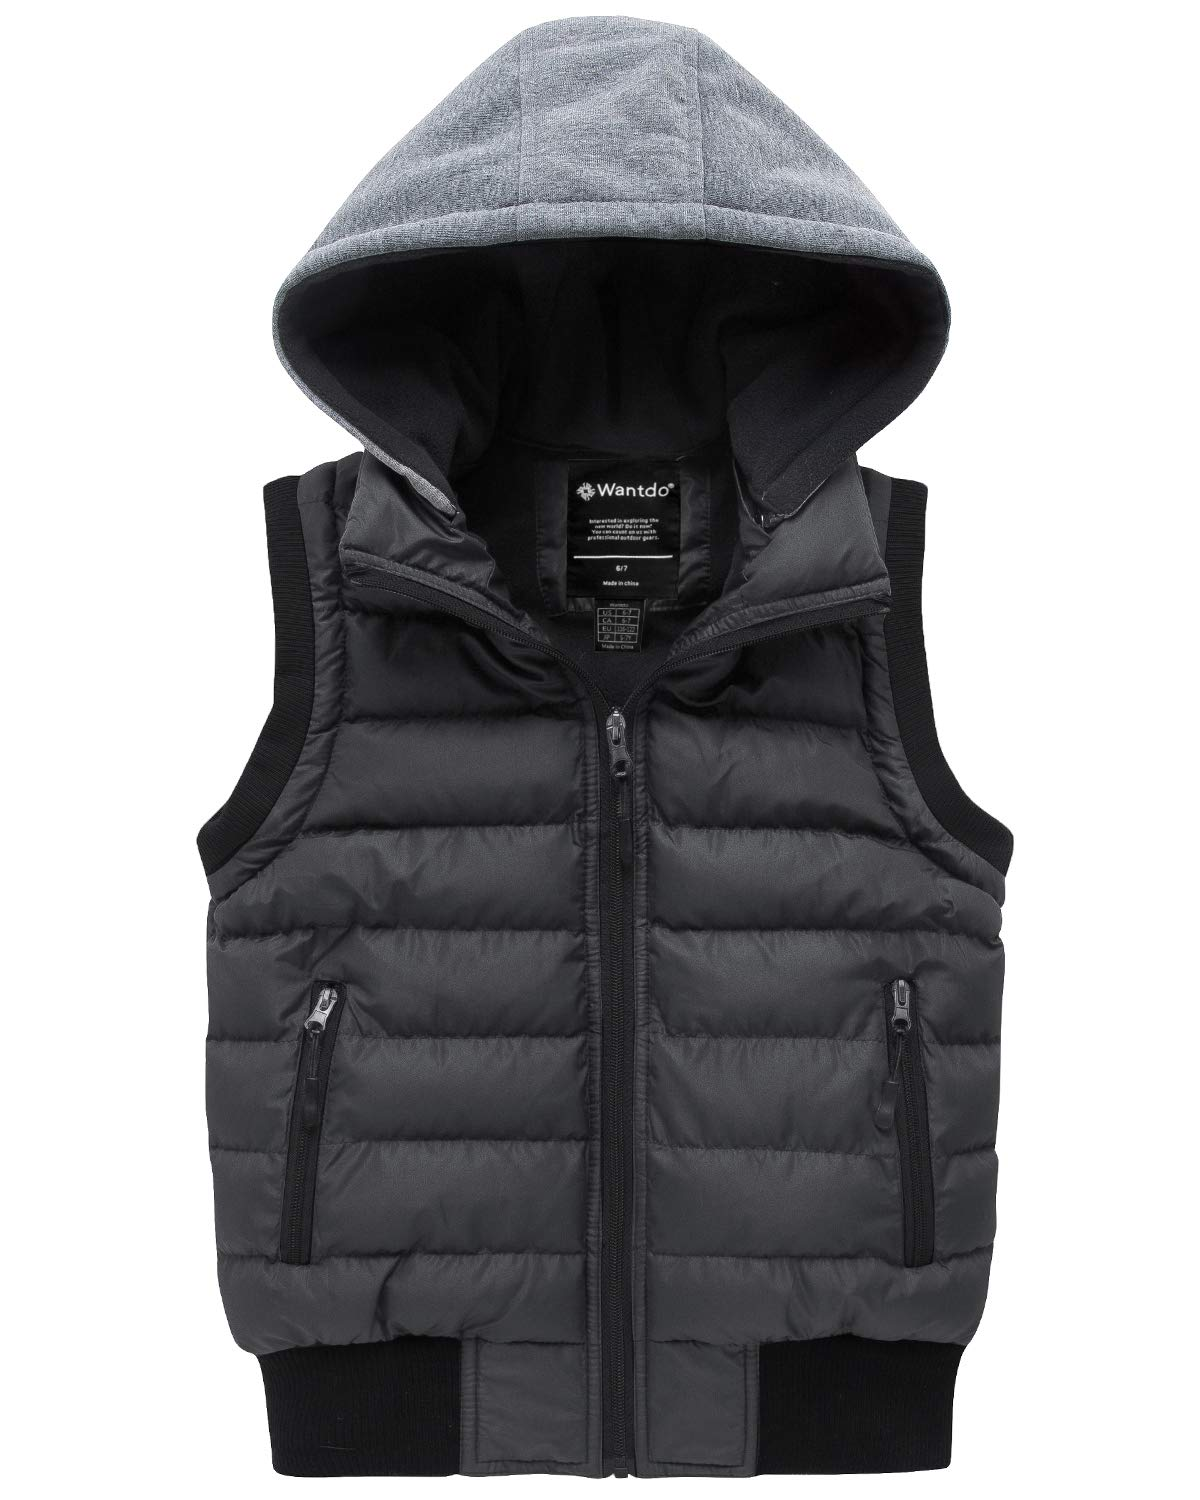 Wantdo Boy's Hooded Puffer Fleece Vest Warm Sleeveless Jacket Light Gray 14/16 by Wantdo